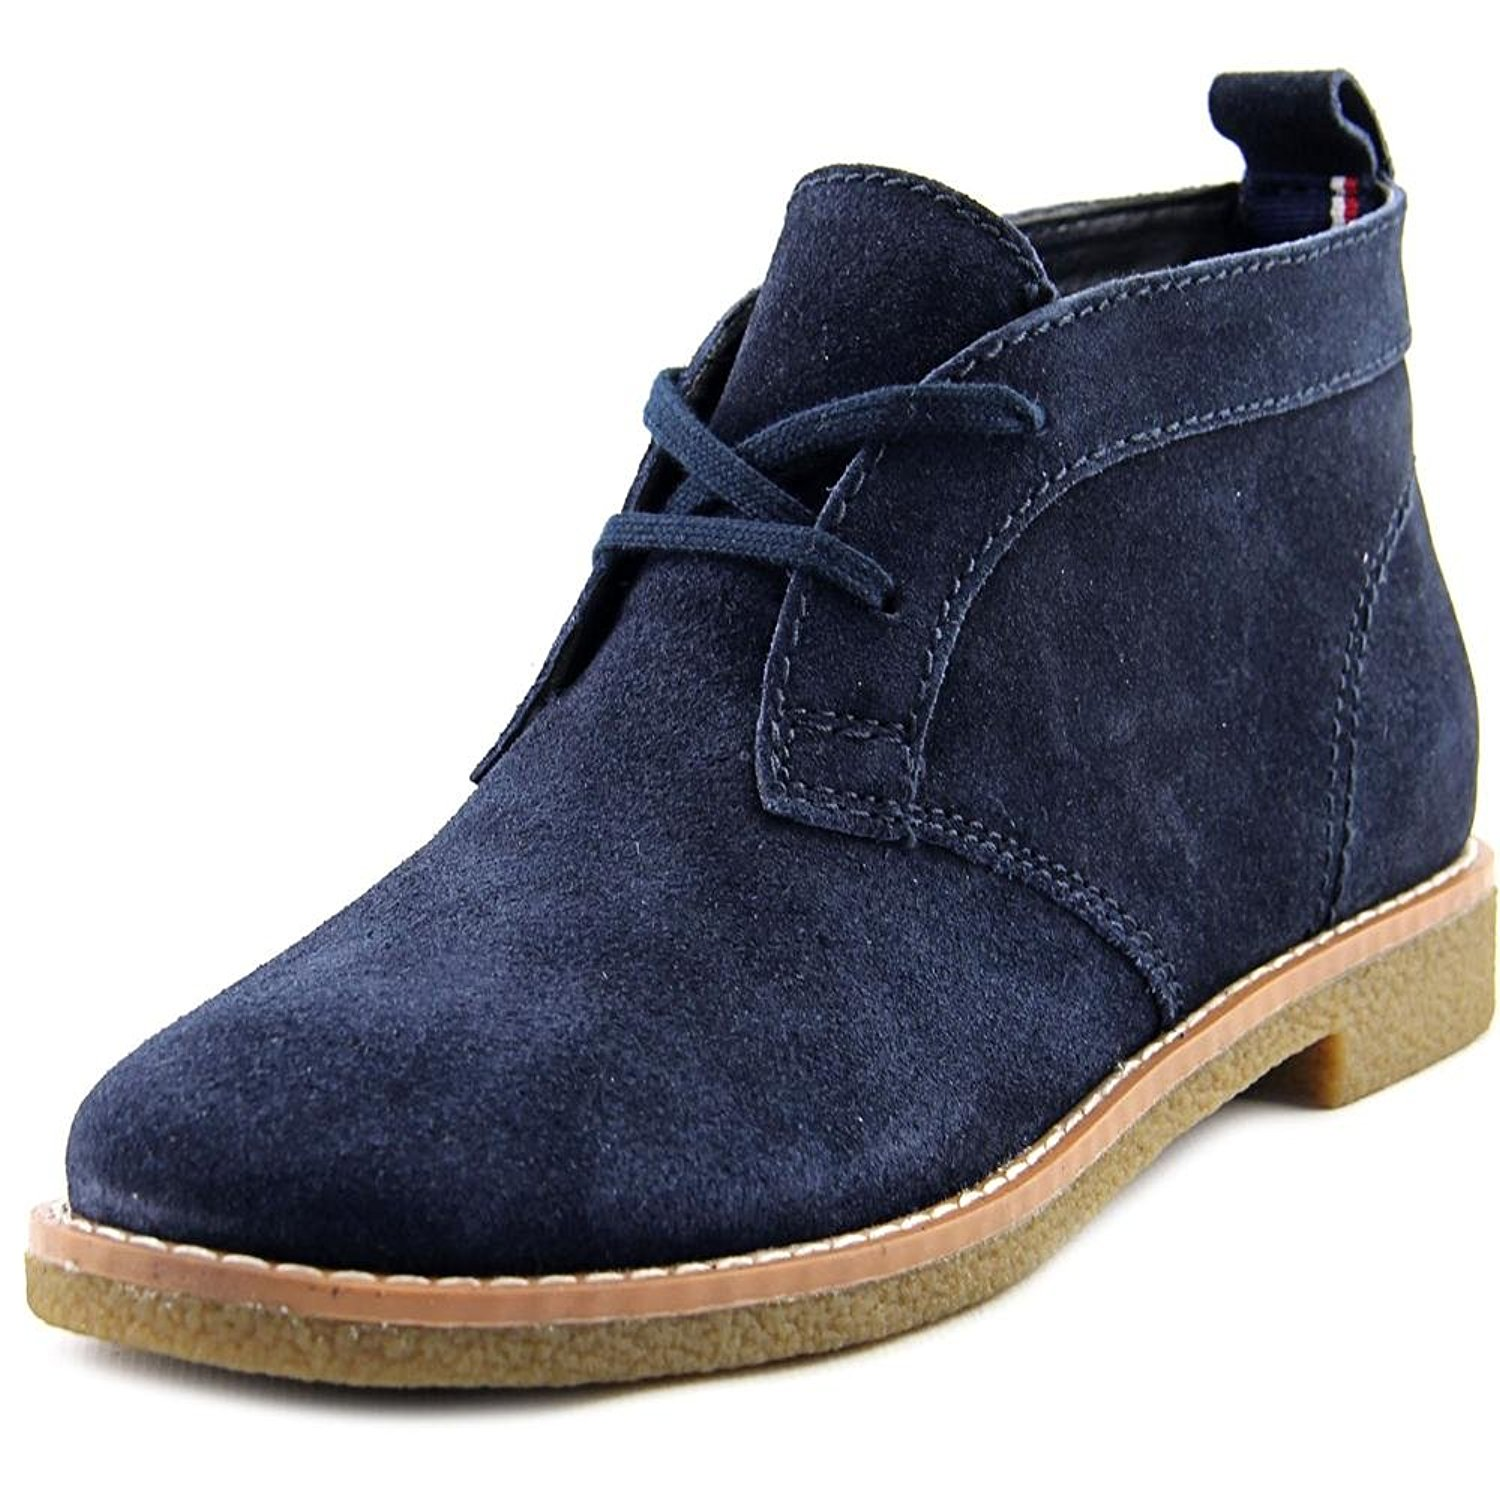 Womens Blaze Leather Closed Toe Ankle Fashion Boots